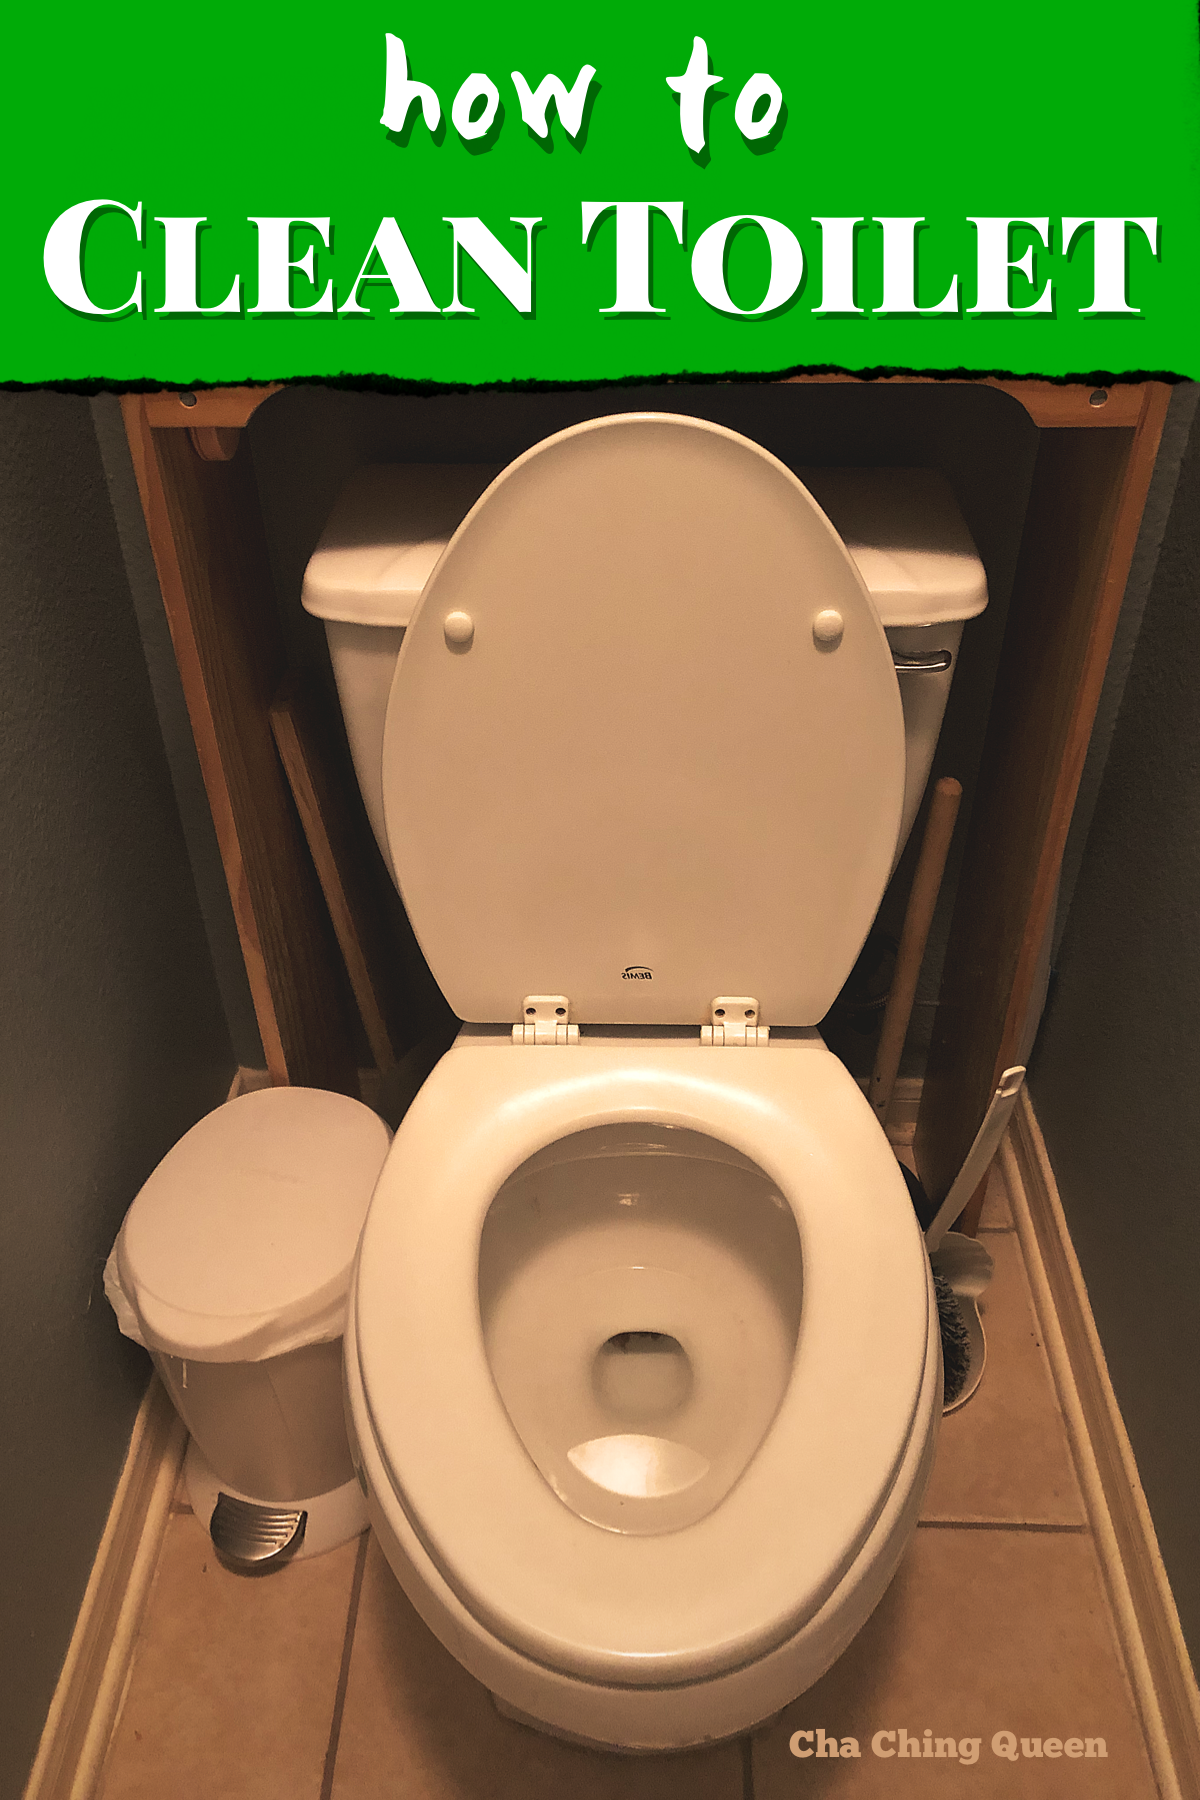 How To Clean A Toilet And How To Remove Hard Water Stains Hard Water Stain Remover Hard Water Stains Toilet Cleaning